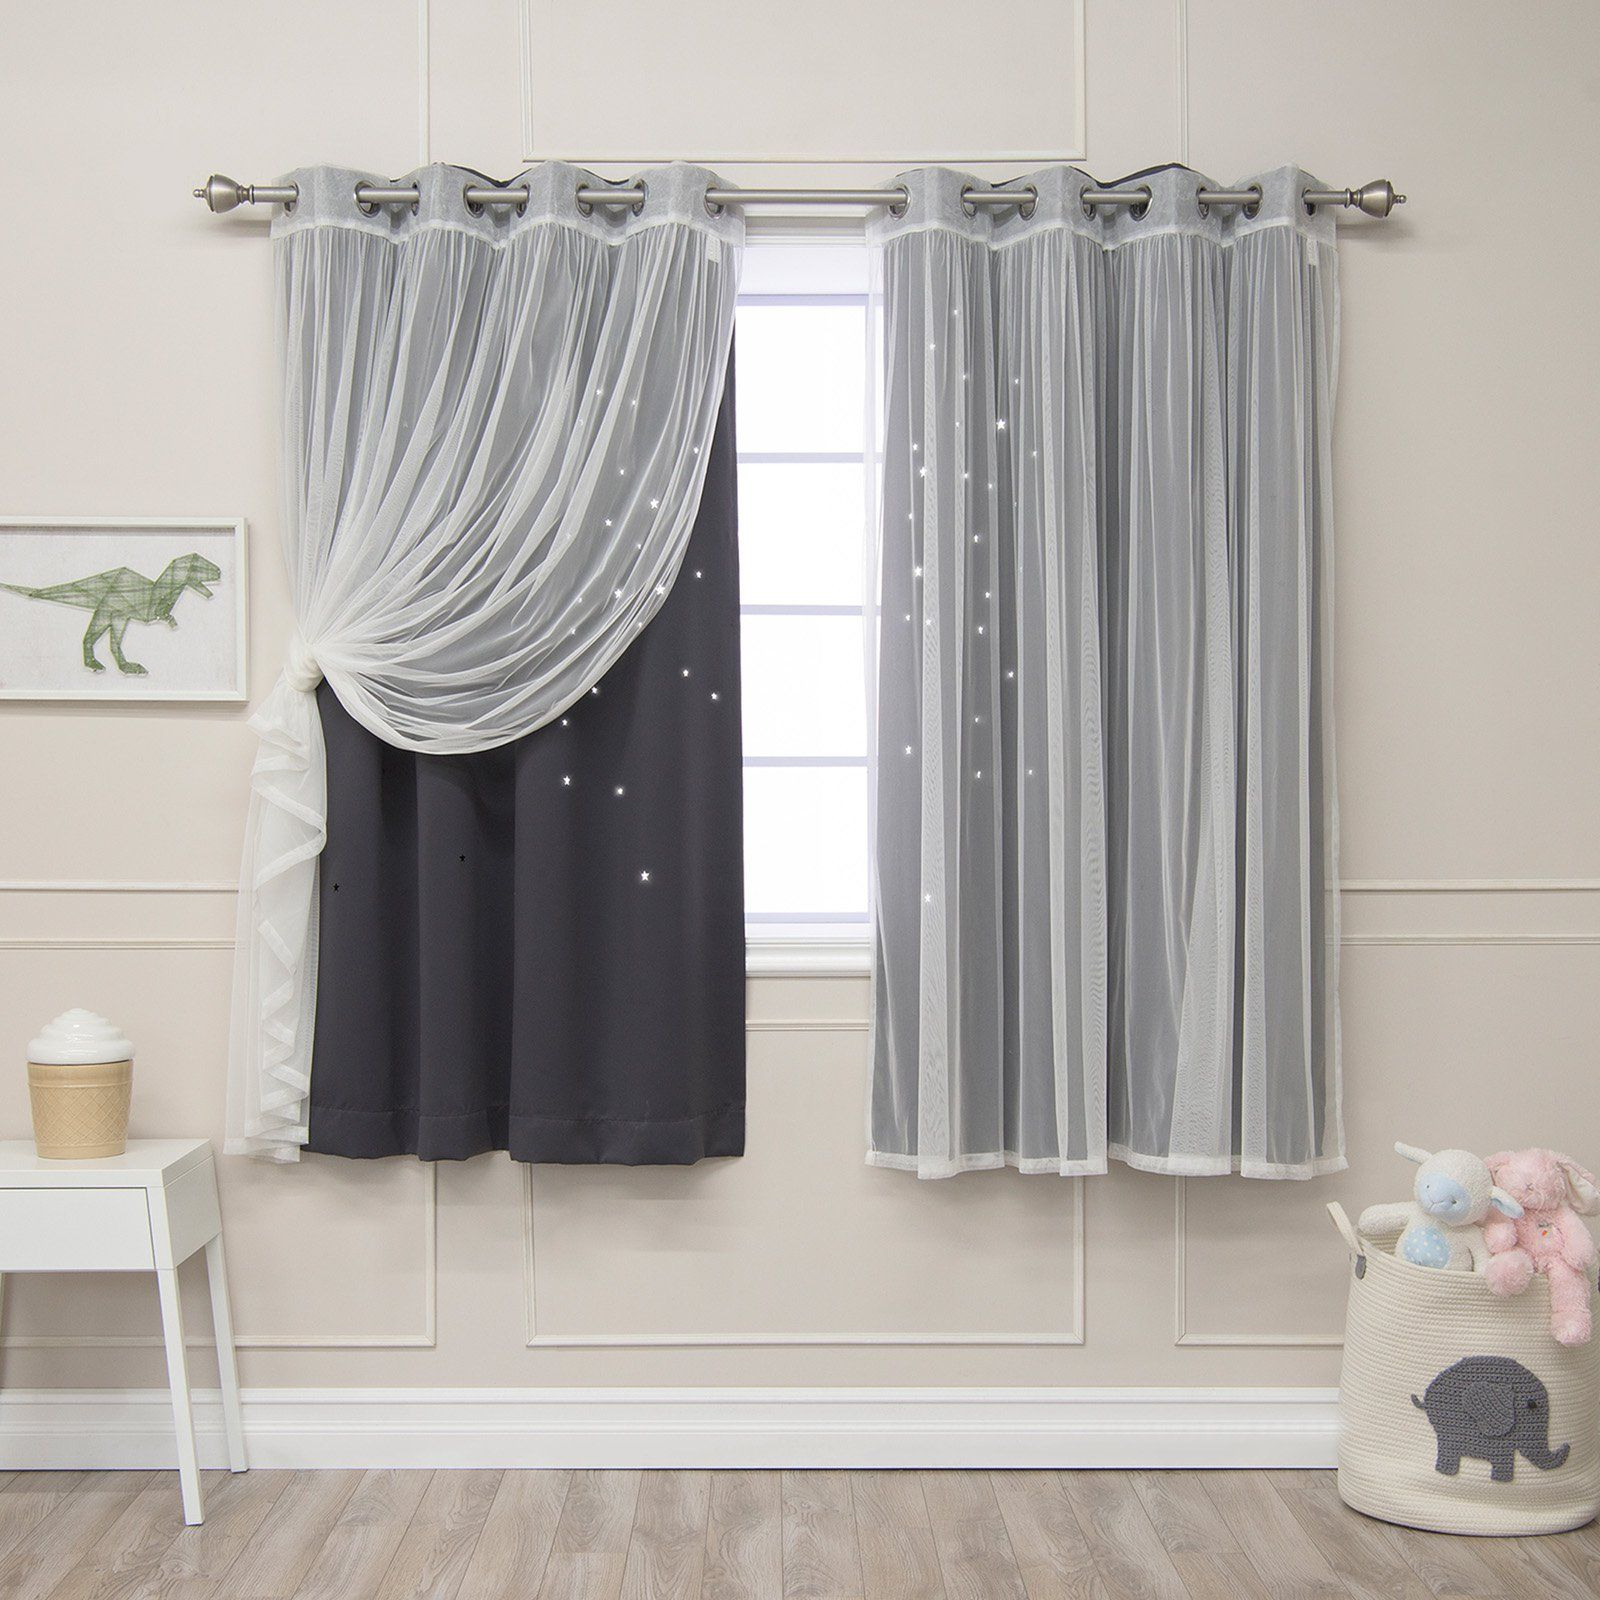 Best Home Fashion Mix And Match Star Punch Blackout And In Star Punch Tulle Overlay Blackout Curtain Panel Pairs (View 22 of 30)